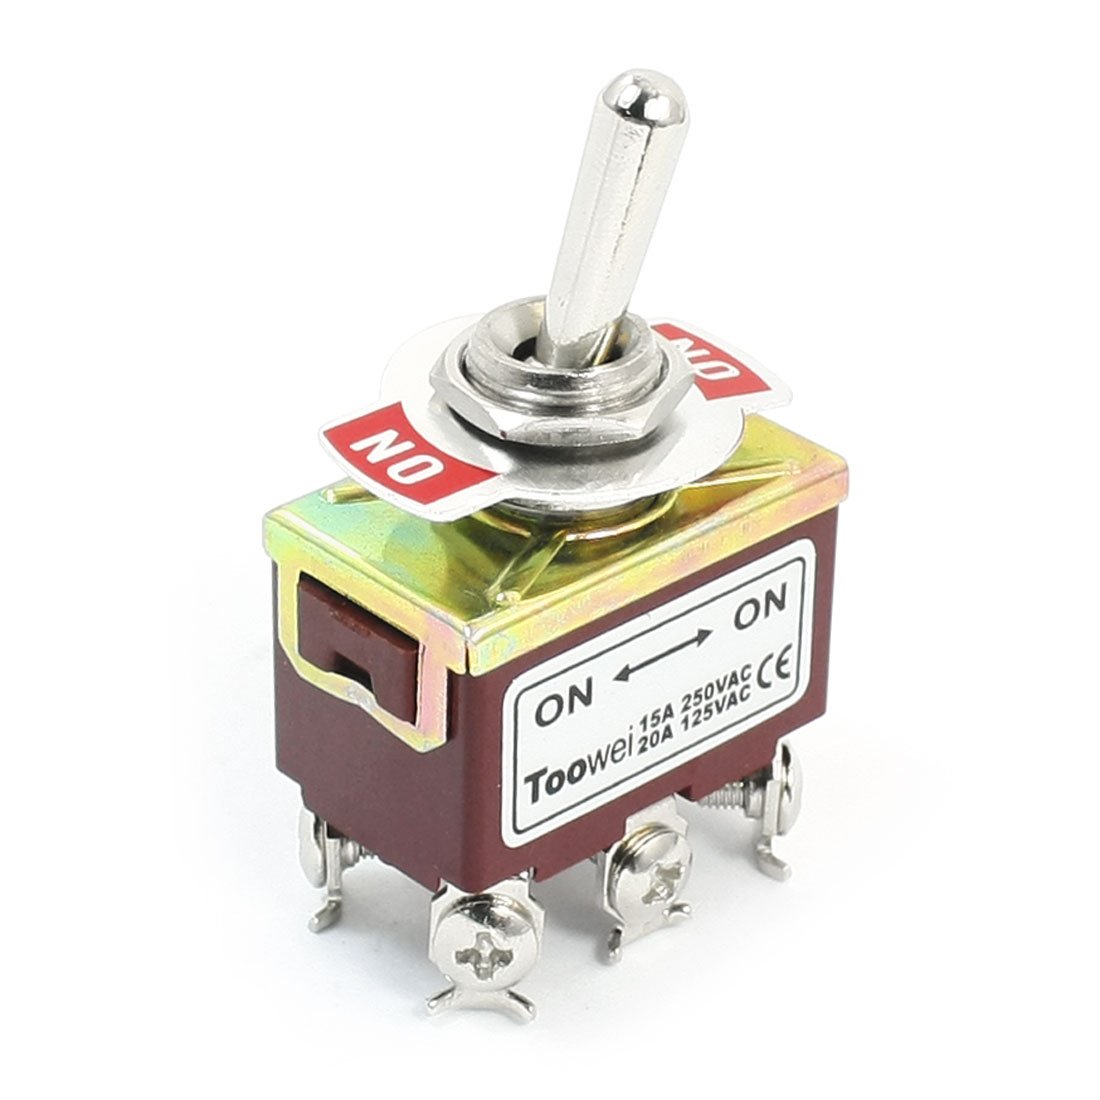 DPDT Momentary/ON Latching/ON 2 Position Toggle Switch AC 250V 15A T702DW